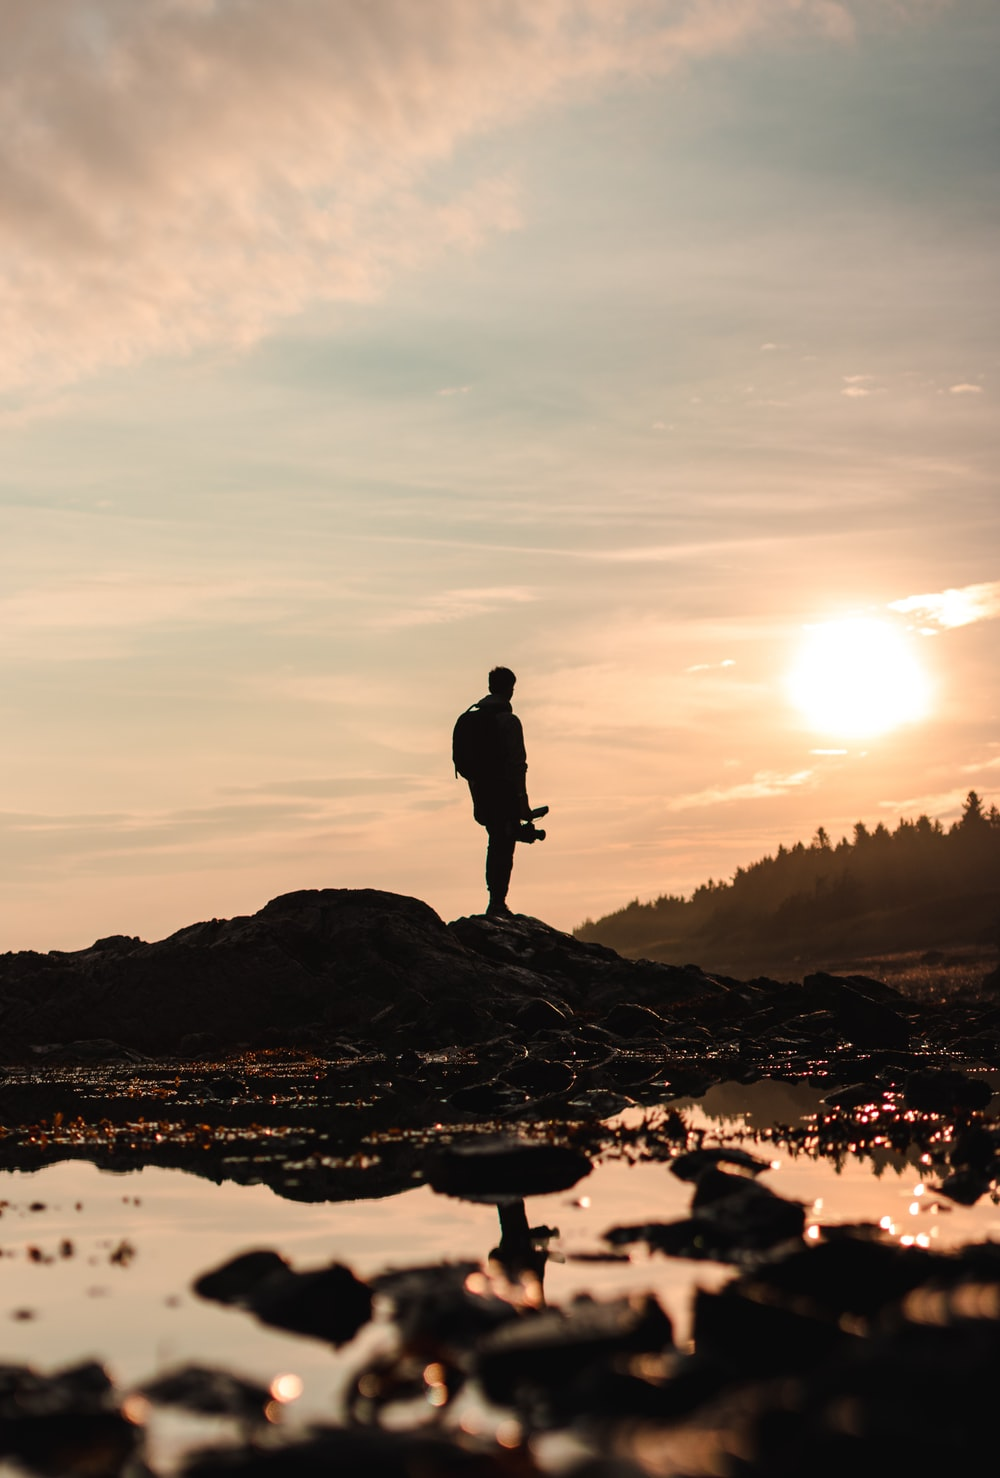 silhouette of man standing on rock formation during sunset